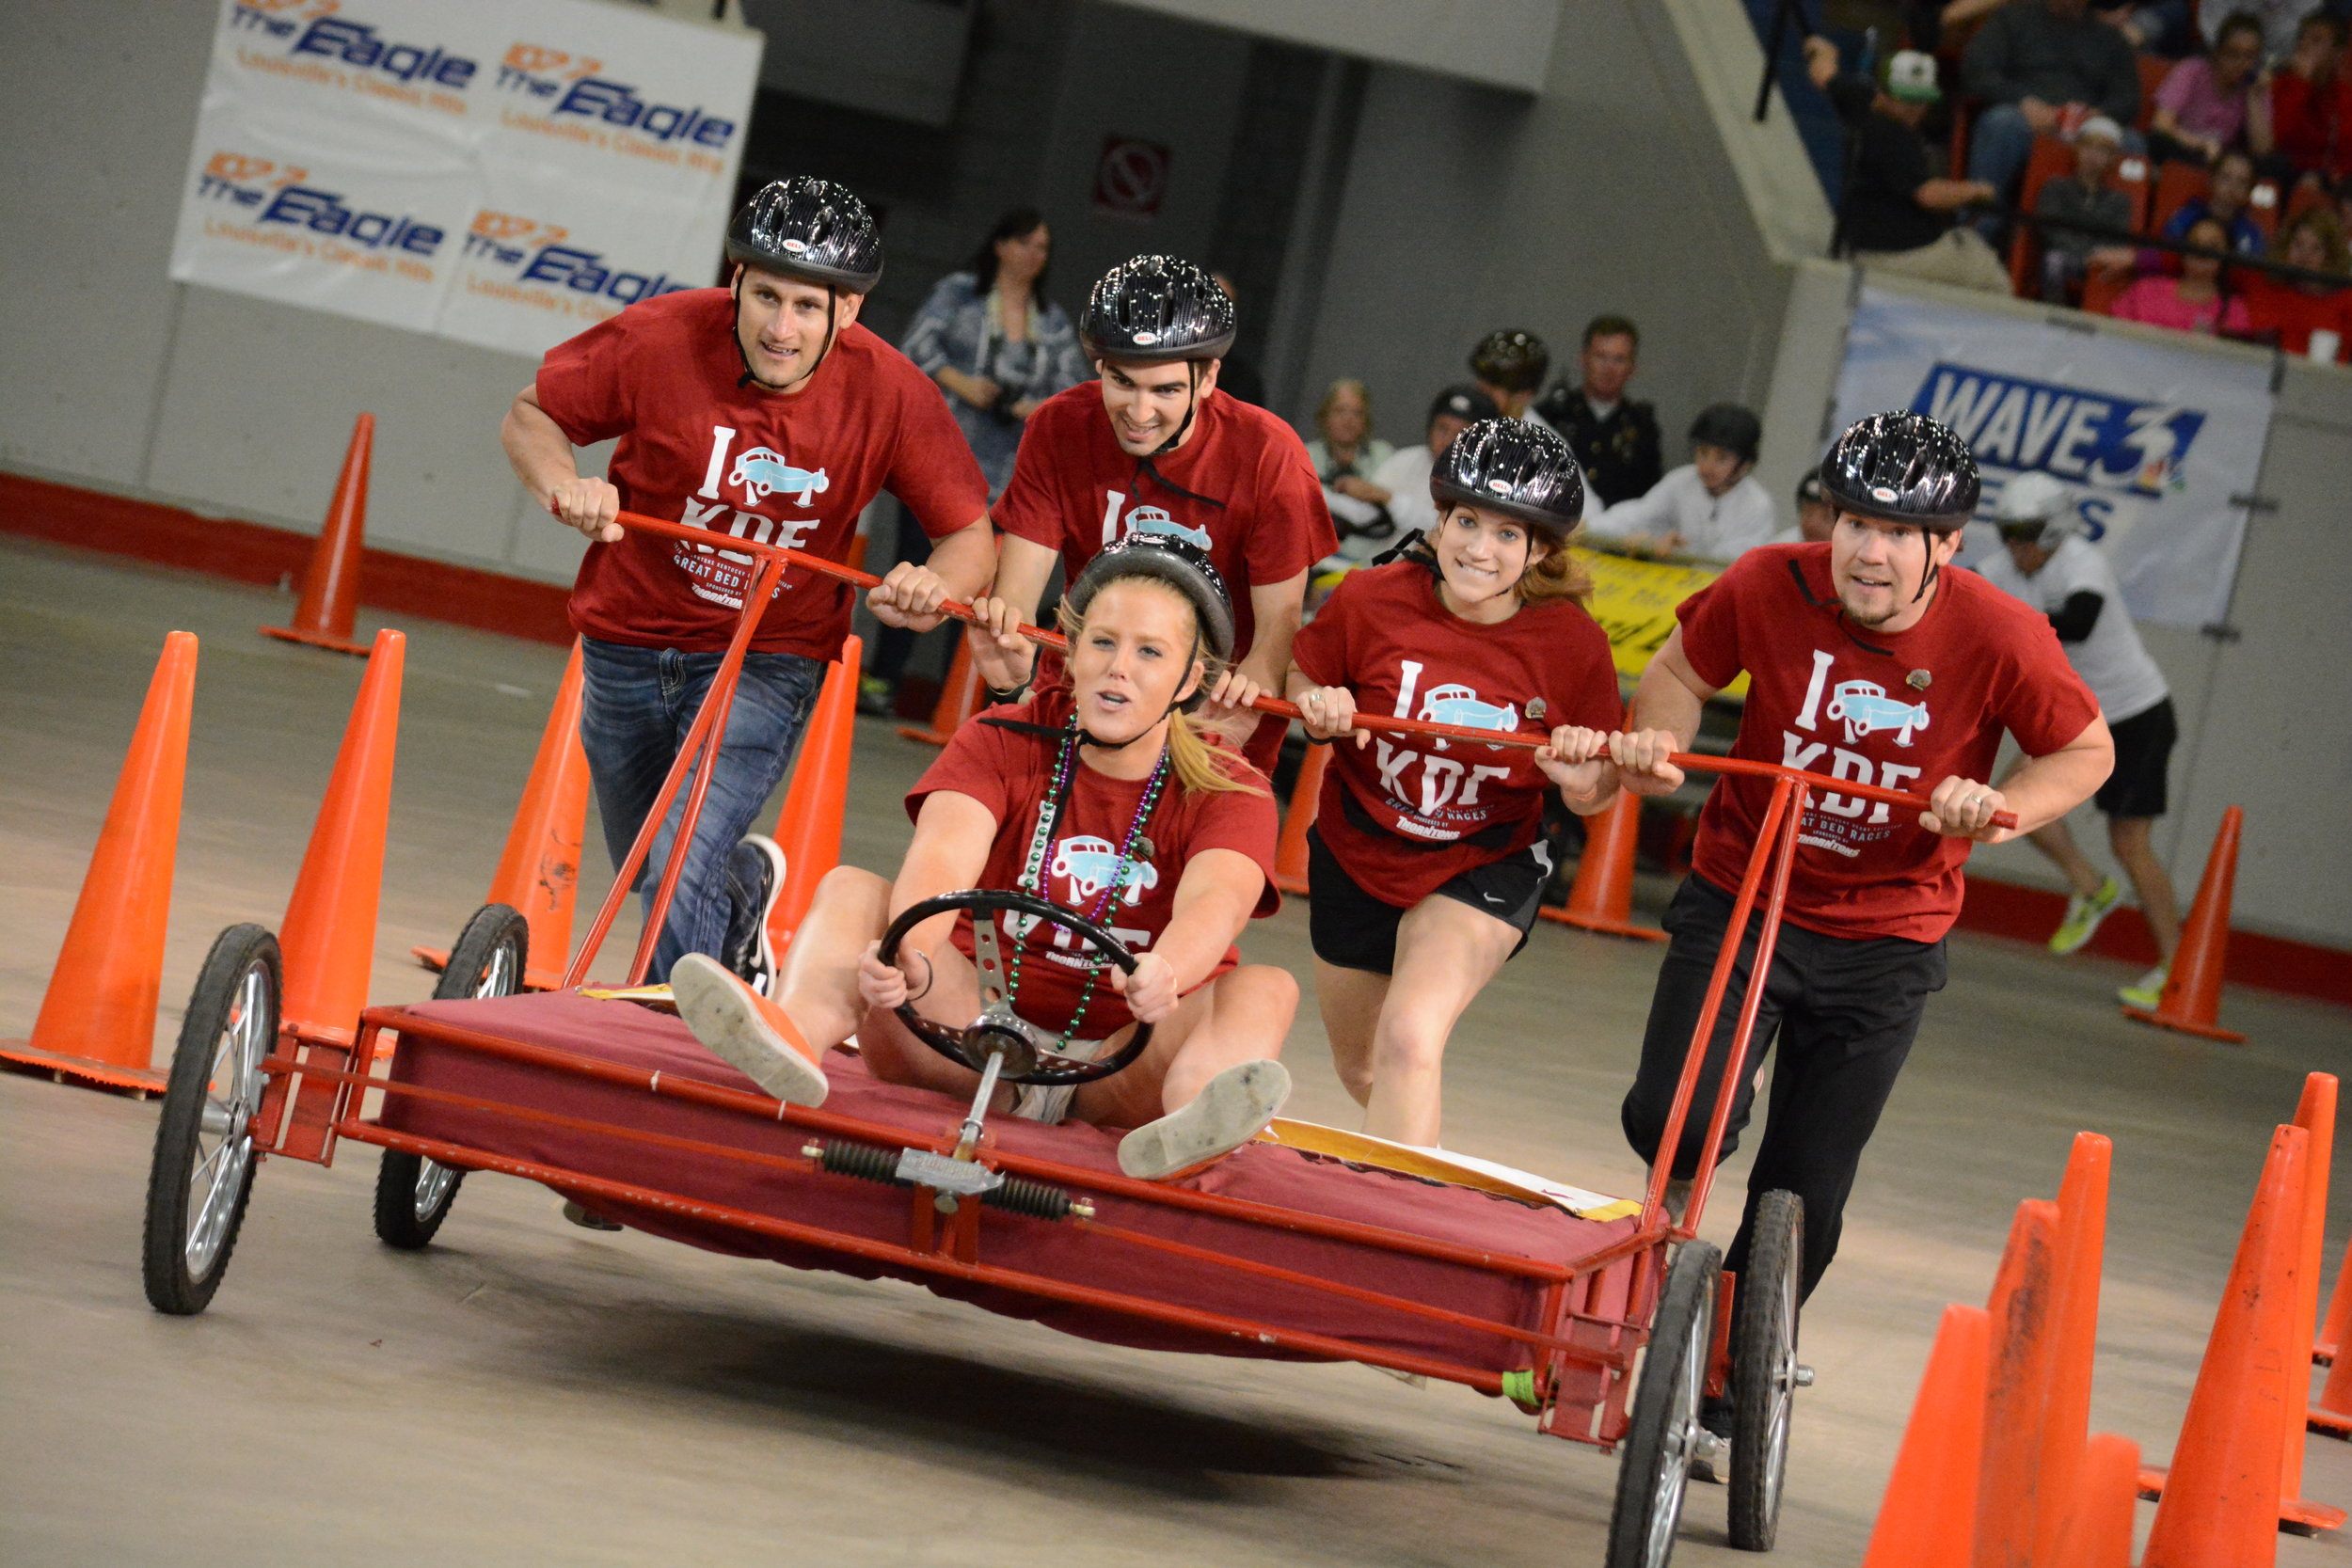 Great Bed Races at Broadbent Arena